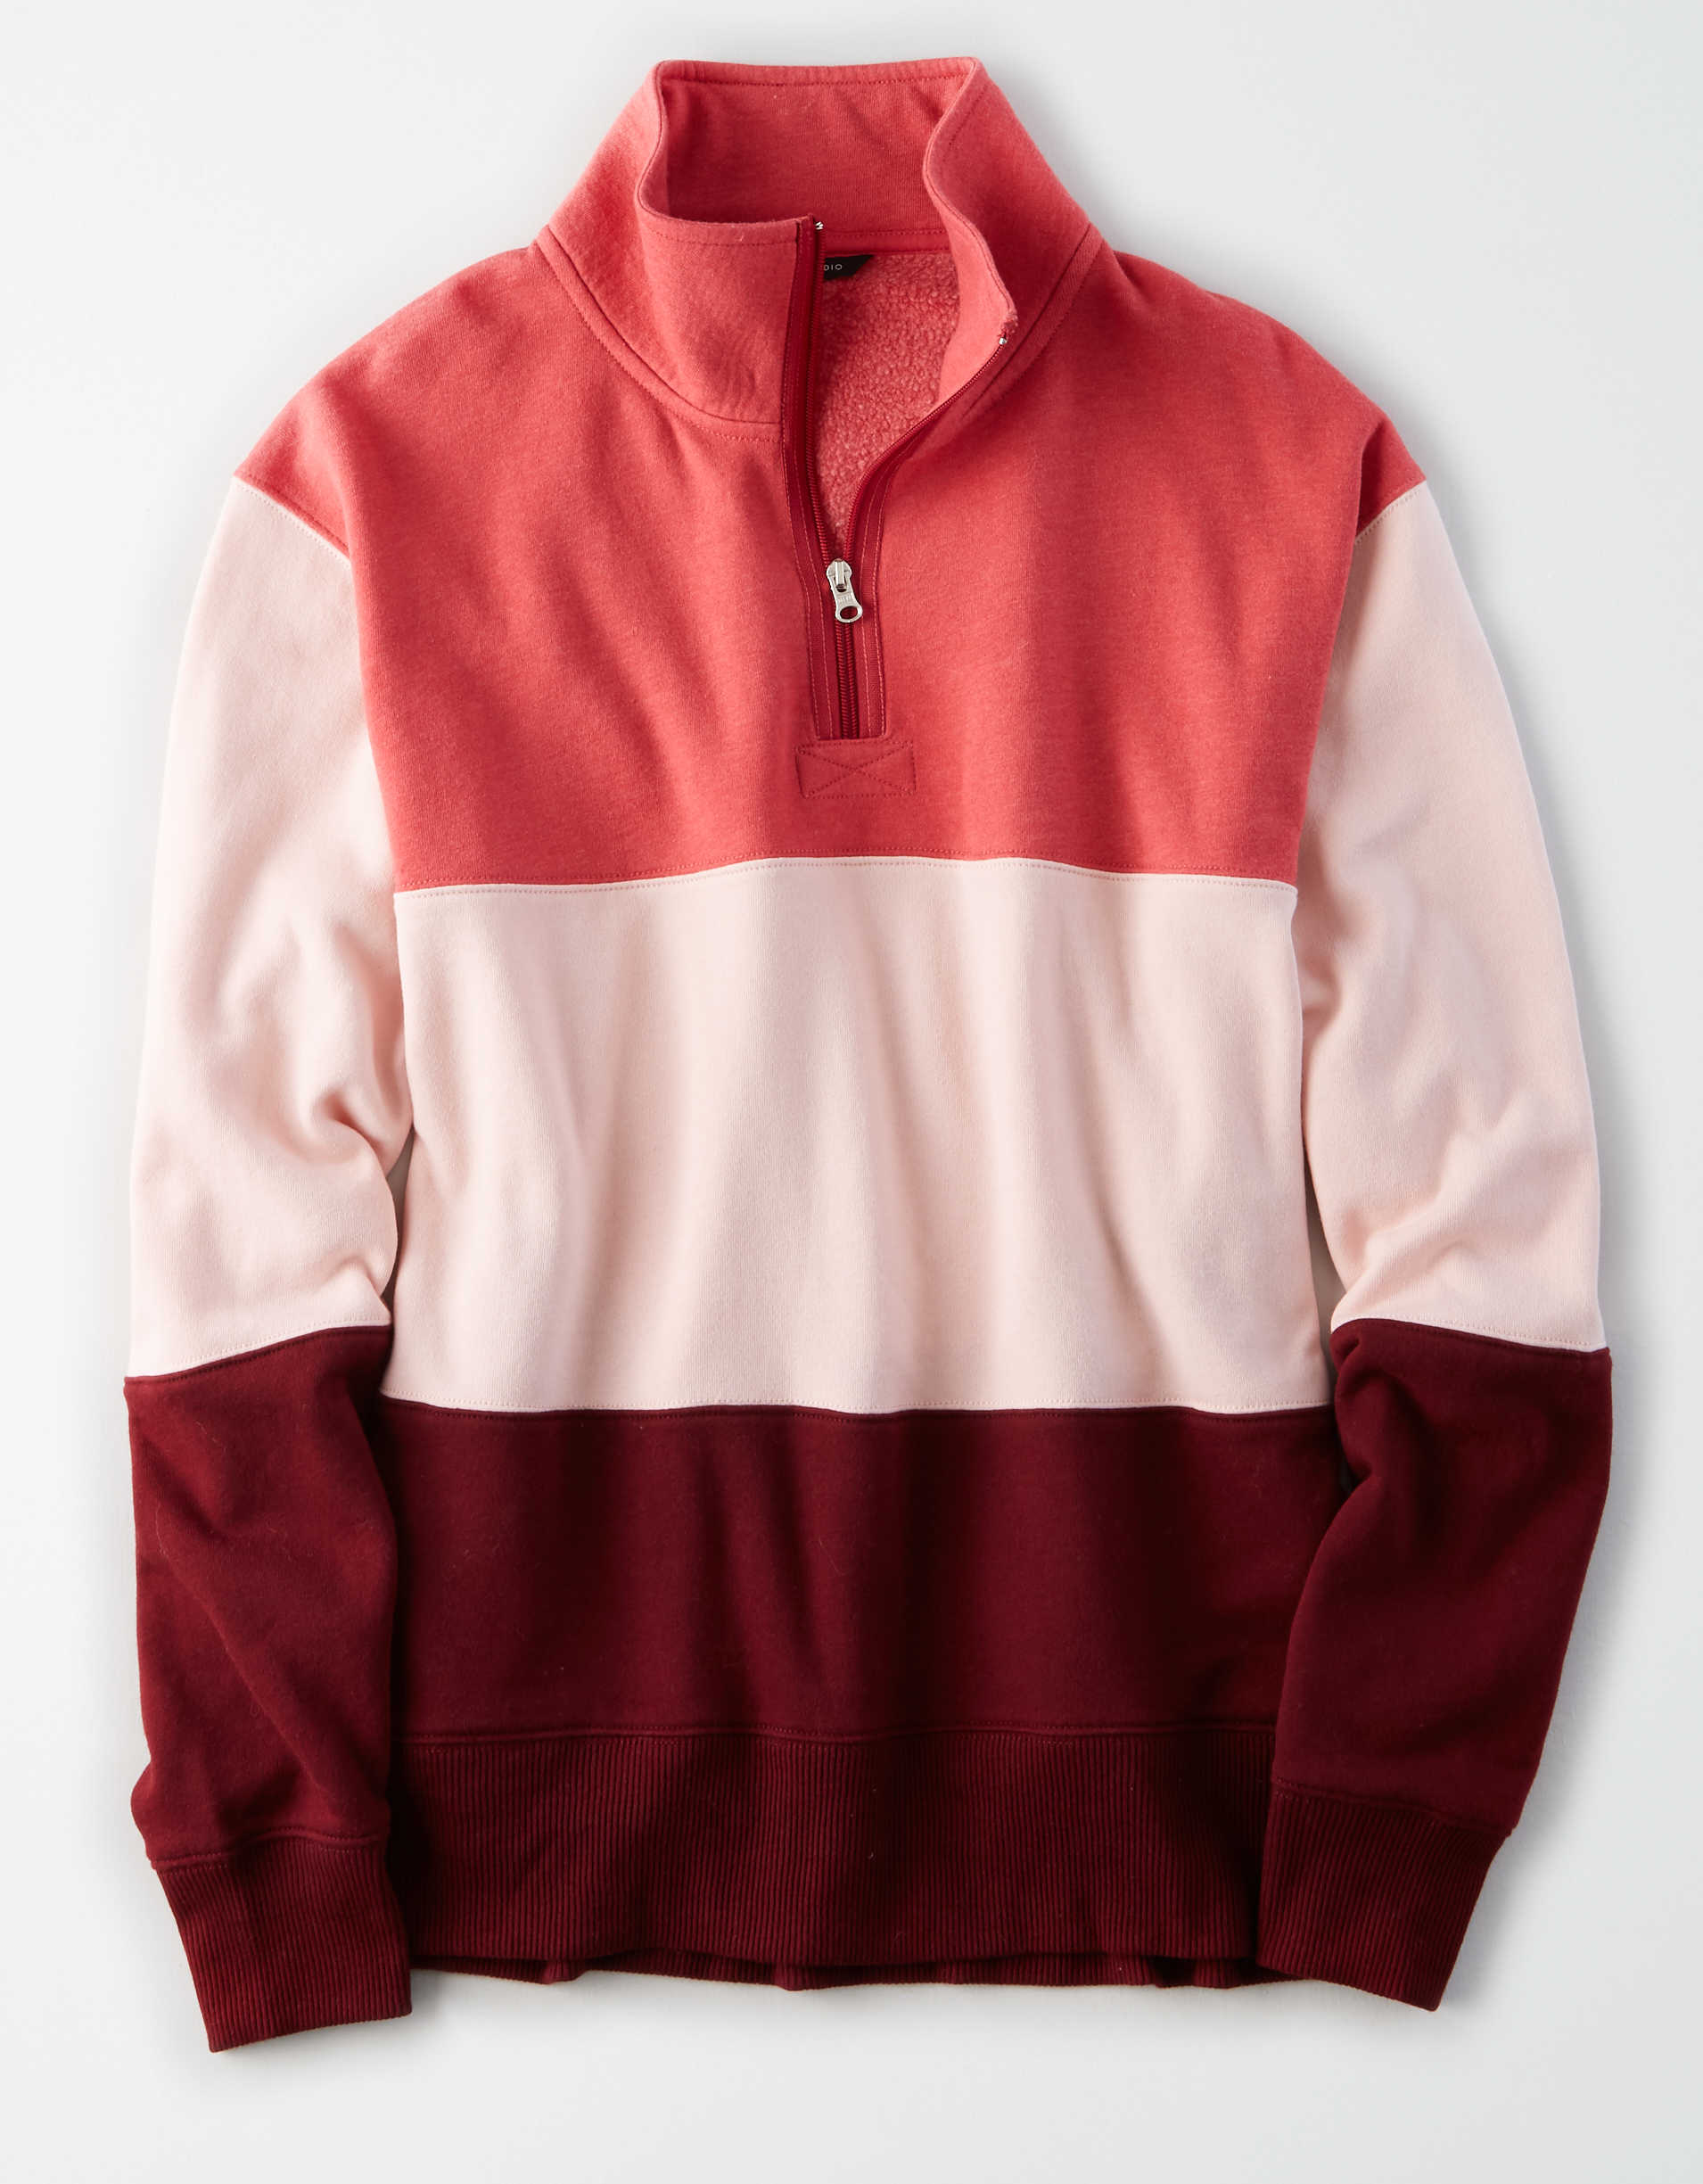 AE Studio Color Block Quarter Zip Sweatshirt